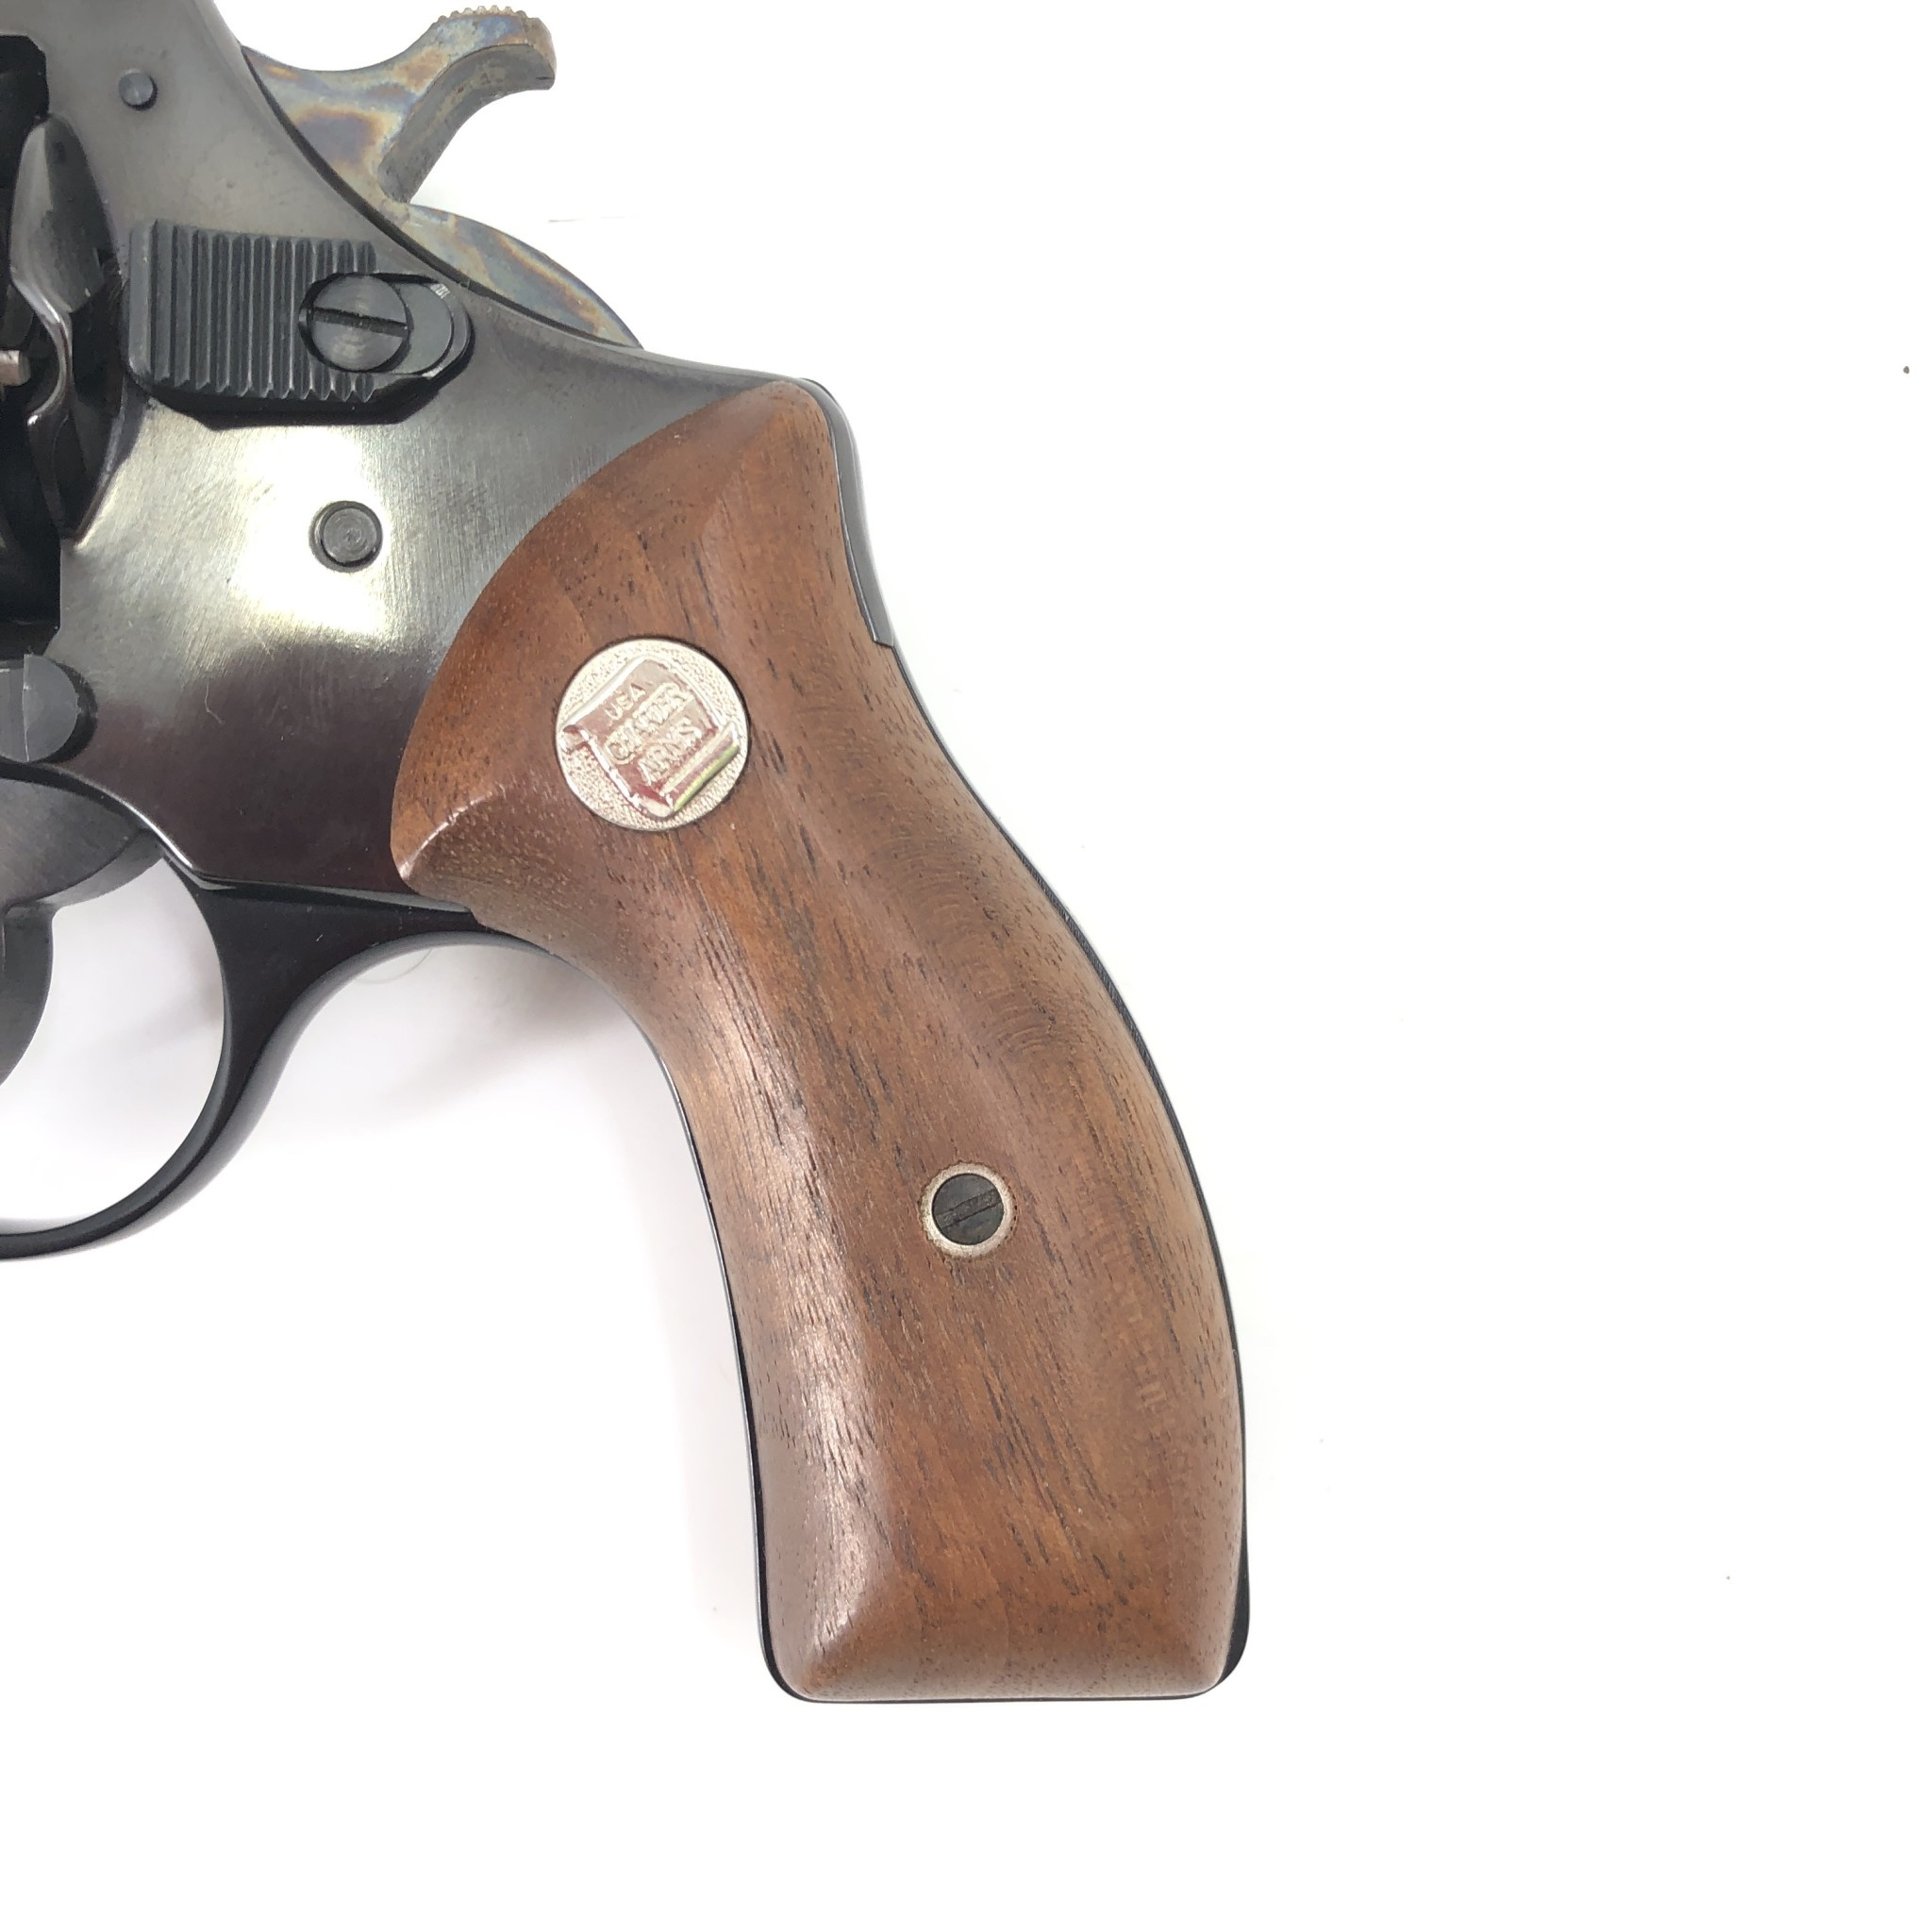 Charter Arms PRE-OWNED CHARTER ARMS BULLDOG REVOLVER 38SPL